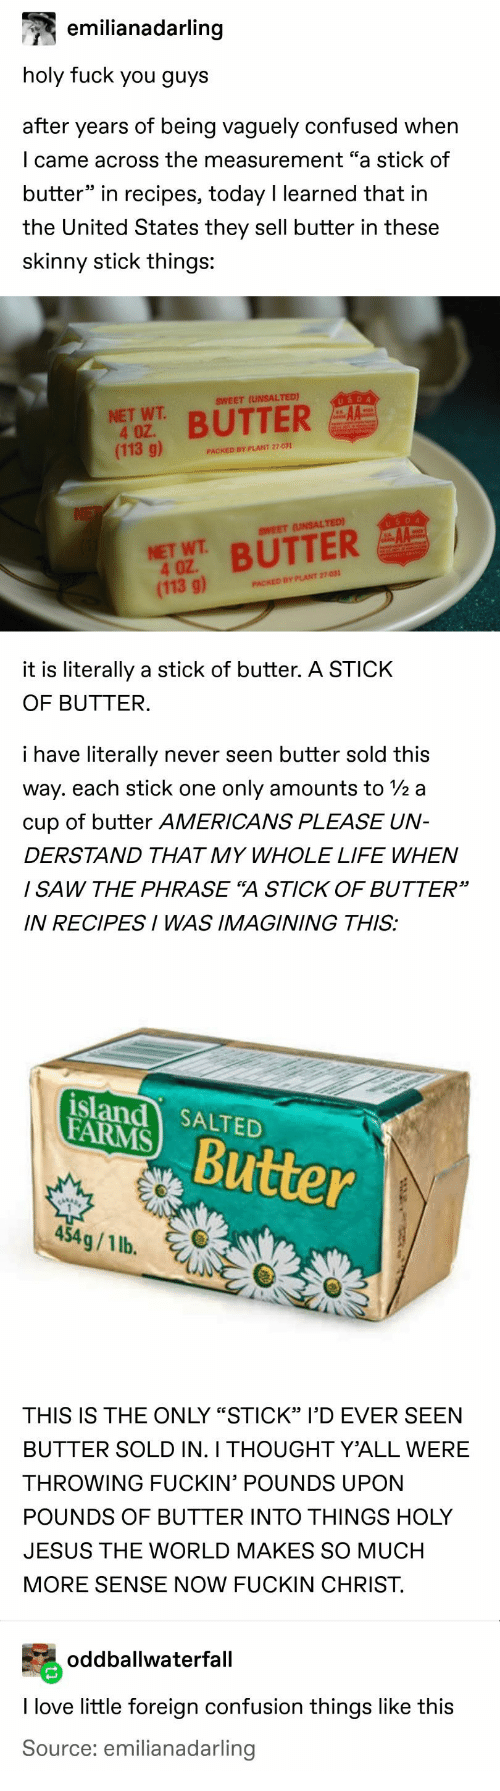 "measurement: emilianadarling  holy fuck you guys  after years of being vaguely confused when  I came across the measurement ""a stick of  butter"" in recipes, today I learned that in  the United States they sell butter in these  skinny stick things:  USDA  SWEET (UNSALTED)  NET WT  4 OZ.  (113 g)  BUTTER  PACKED BY PLANT 27-031  NE  USDA  AA  SWEET (UNSALTED)  NET WT BUTTER  4 OZ  (113 g)  PACKED BY PLANT 27-031  it is literally a stick of butter. A STICK  OF BUTTER.  i have literally  never seen butter sold this  way. each stick one  only amounts to 2 a  cup of butter AMERICANS PLEASE UN-  DERSTAND THAT MY WHOLE LIFE WHEN  I SAW THE PHRASE ""A STICK OF BUTTER""  IN RECIPESI WAS IMAGINING THIS:  island SALTED  FARMS  Butter  454g/1 lb.  THIS IS THE ONLY ""STICK"" I'D EVER SEEN  BUTTER SOLD IN. I THOUGHT Y'ALL WERE  THROWING FUCKIN' POUNDS UPON  POUNDS OF BUTTER INTO THINGS HOLY  JESUS THE WORLD MAKES SO MUCH  MORE SENSE NOW FUCKIN CHRIST  oddballwaterfall  I love little foreign confusion things like this  Source: emilianadarling"